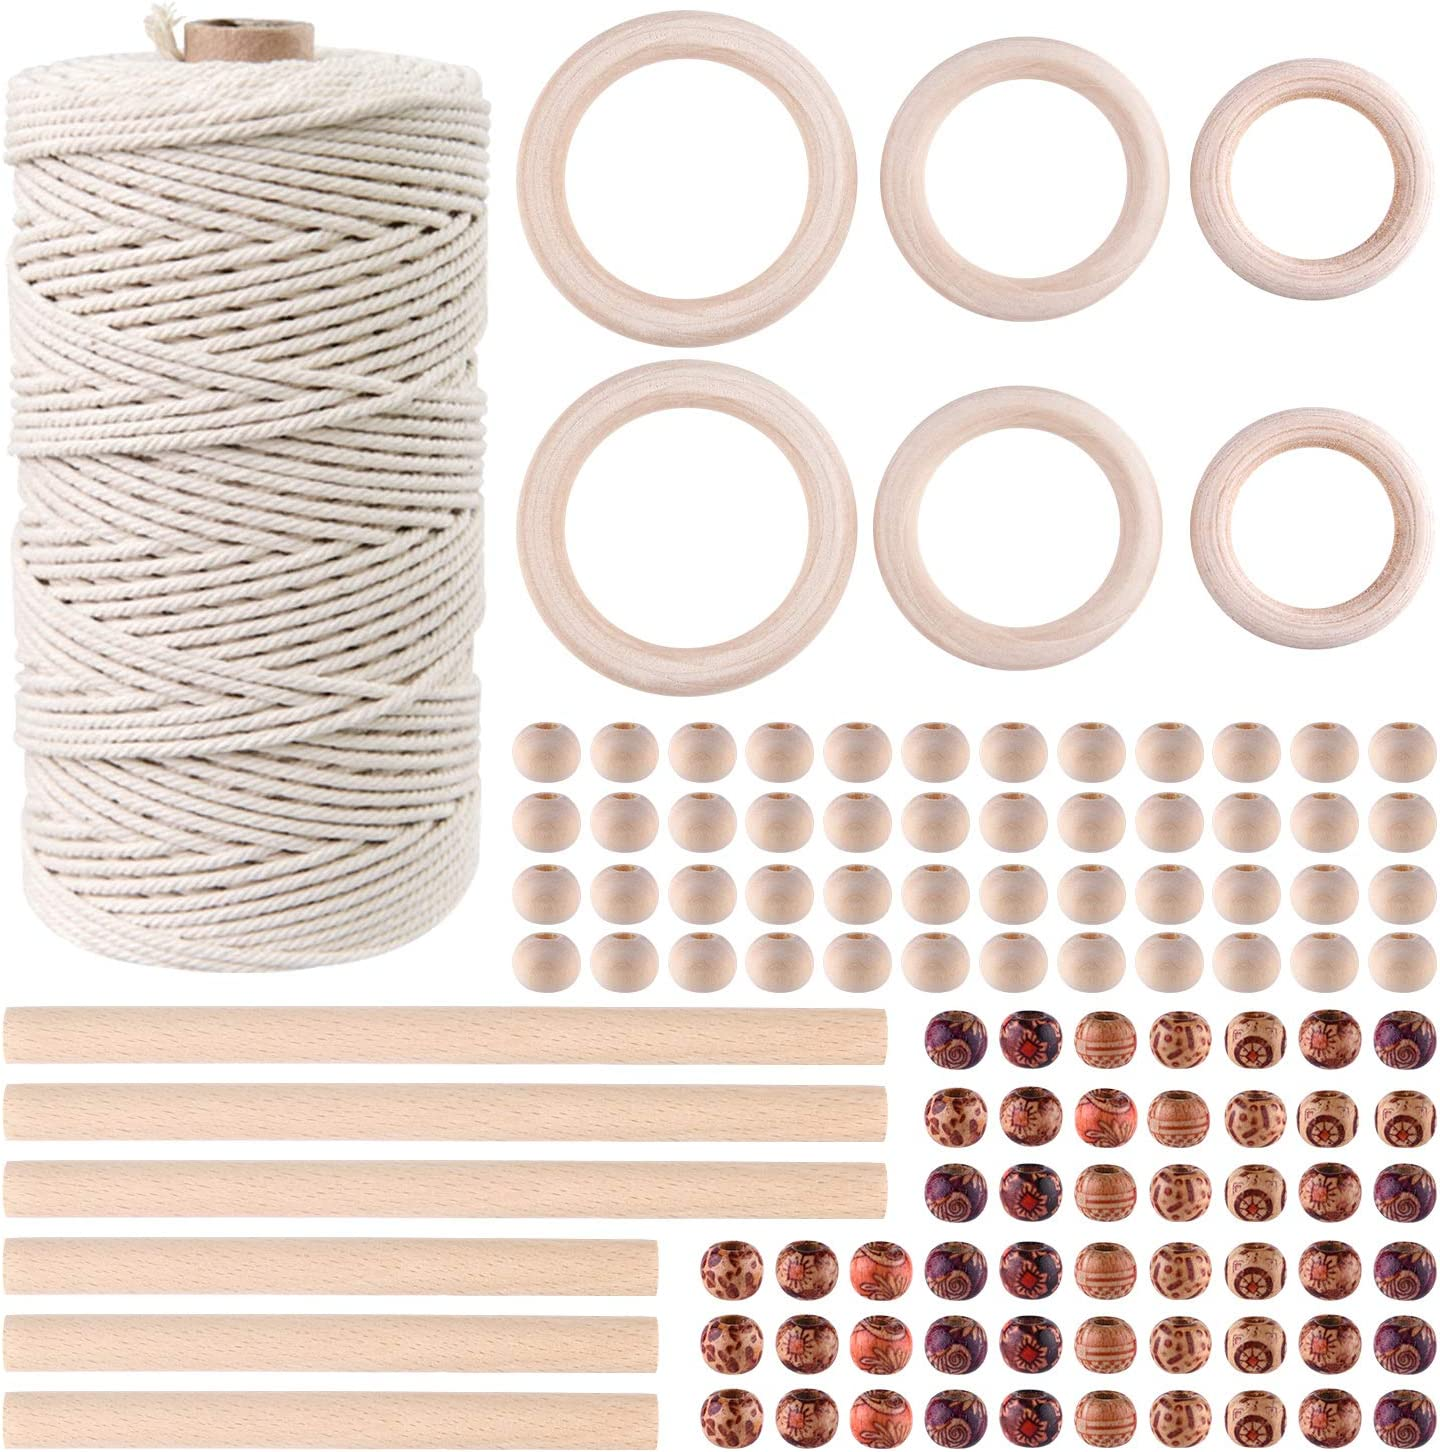 TUPARKA Macrame Rope Max 61% OFF Kit 109 New popularity Yadrs 100 Cord with 3mm Pcs